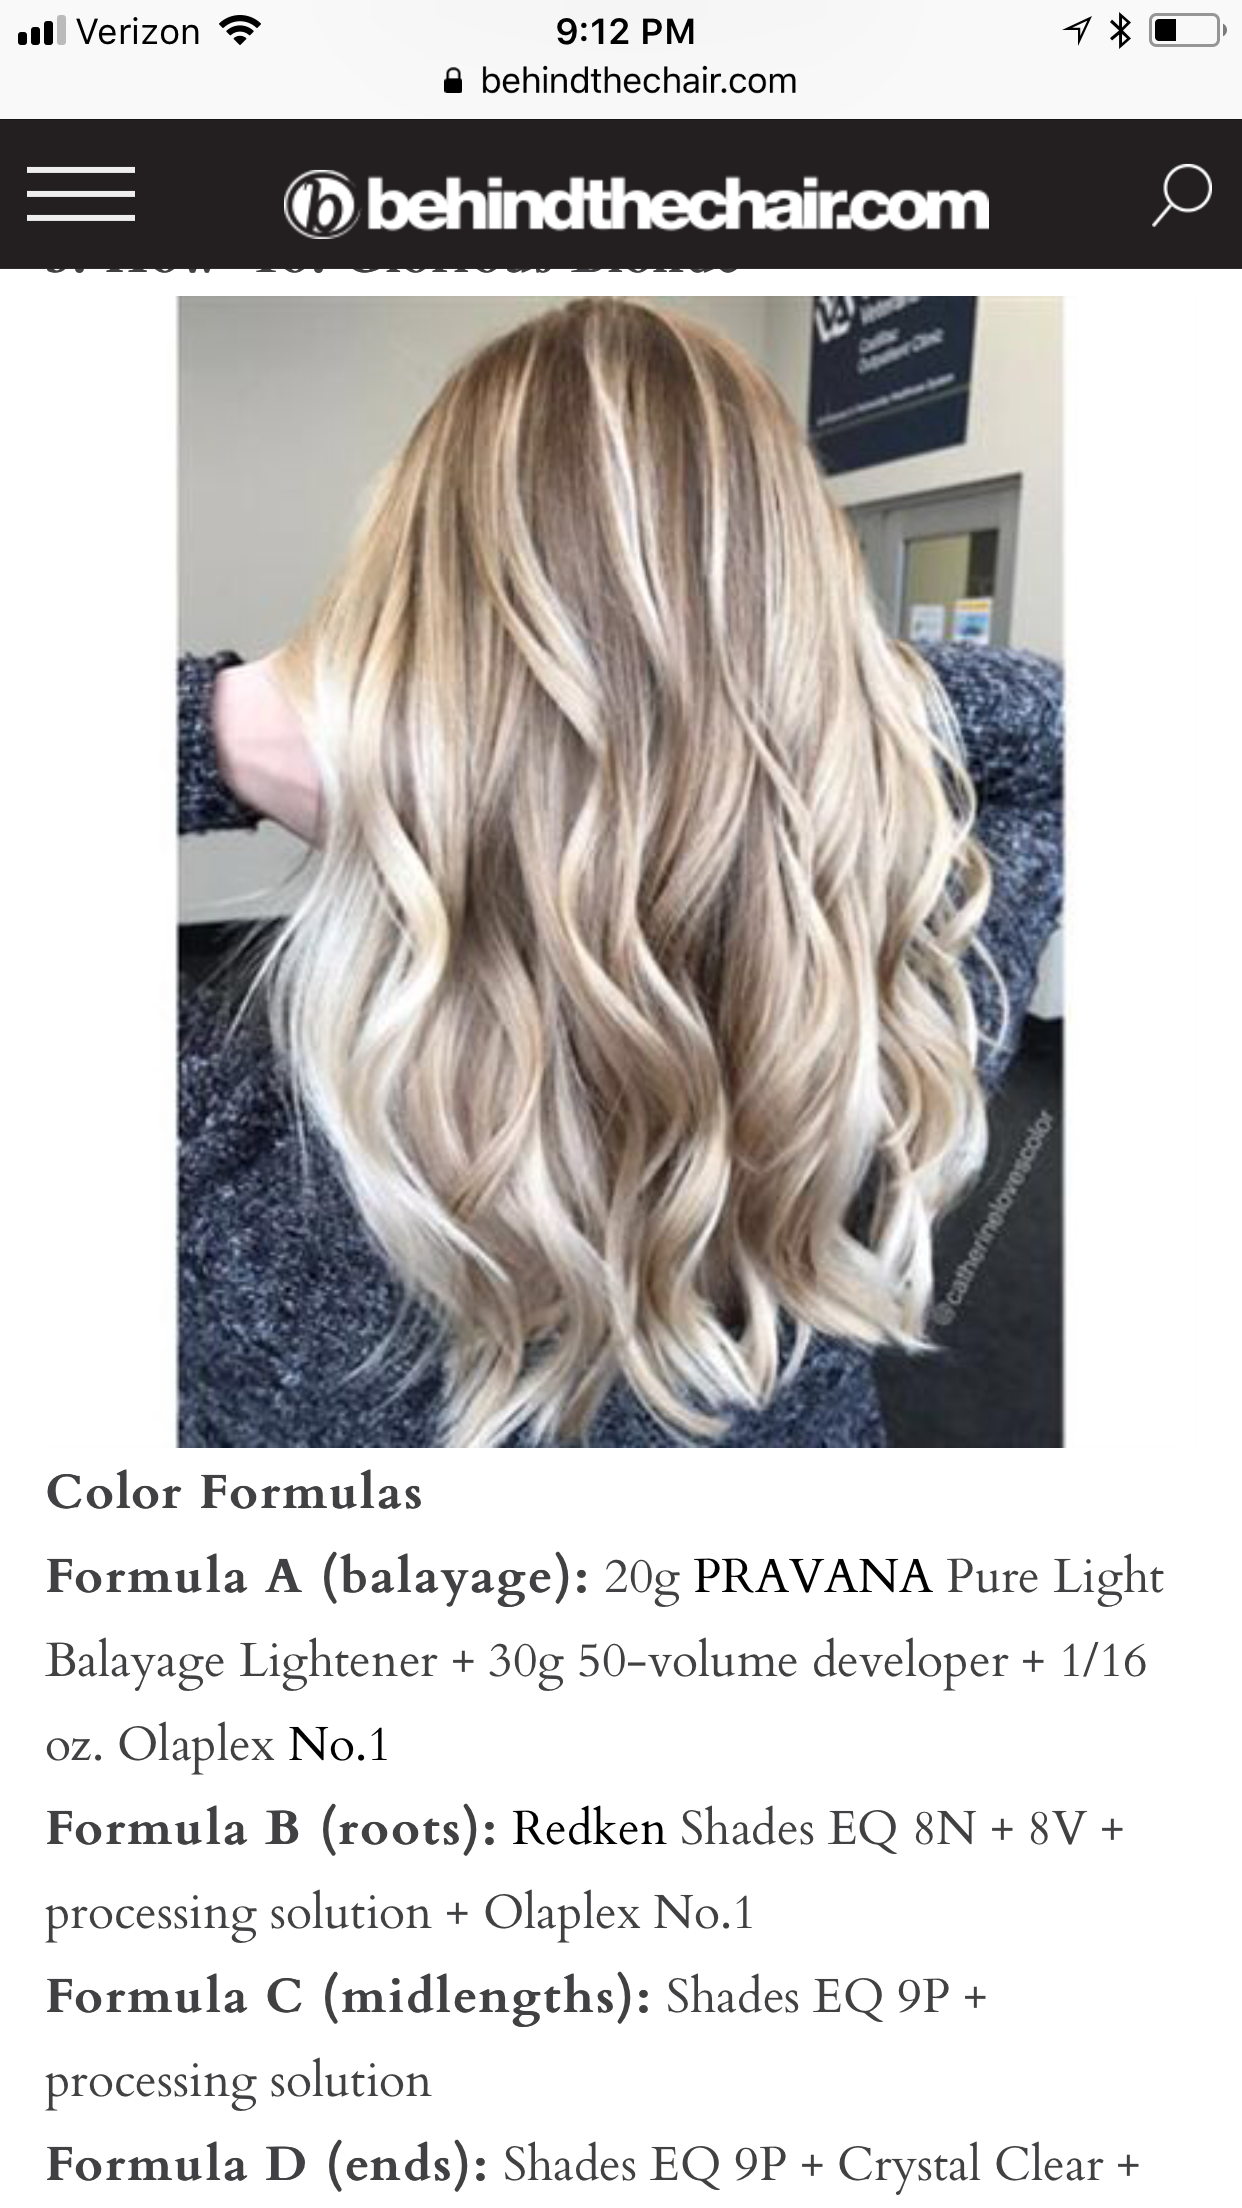 Redken Eq 9p Clear Behindthechair Com Color Formulas Balayage Olaplex Redken This Is Blonde In 2020 Redken Hair Products Hair Color Formulas Redken Hair Color